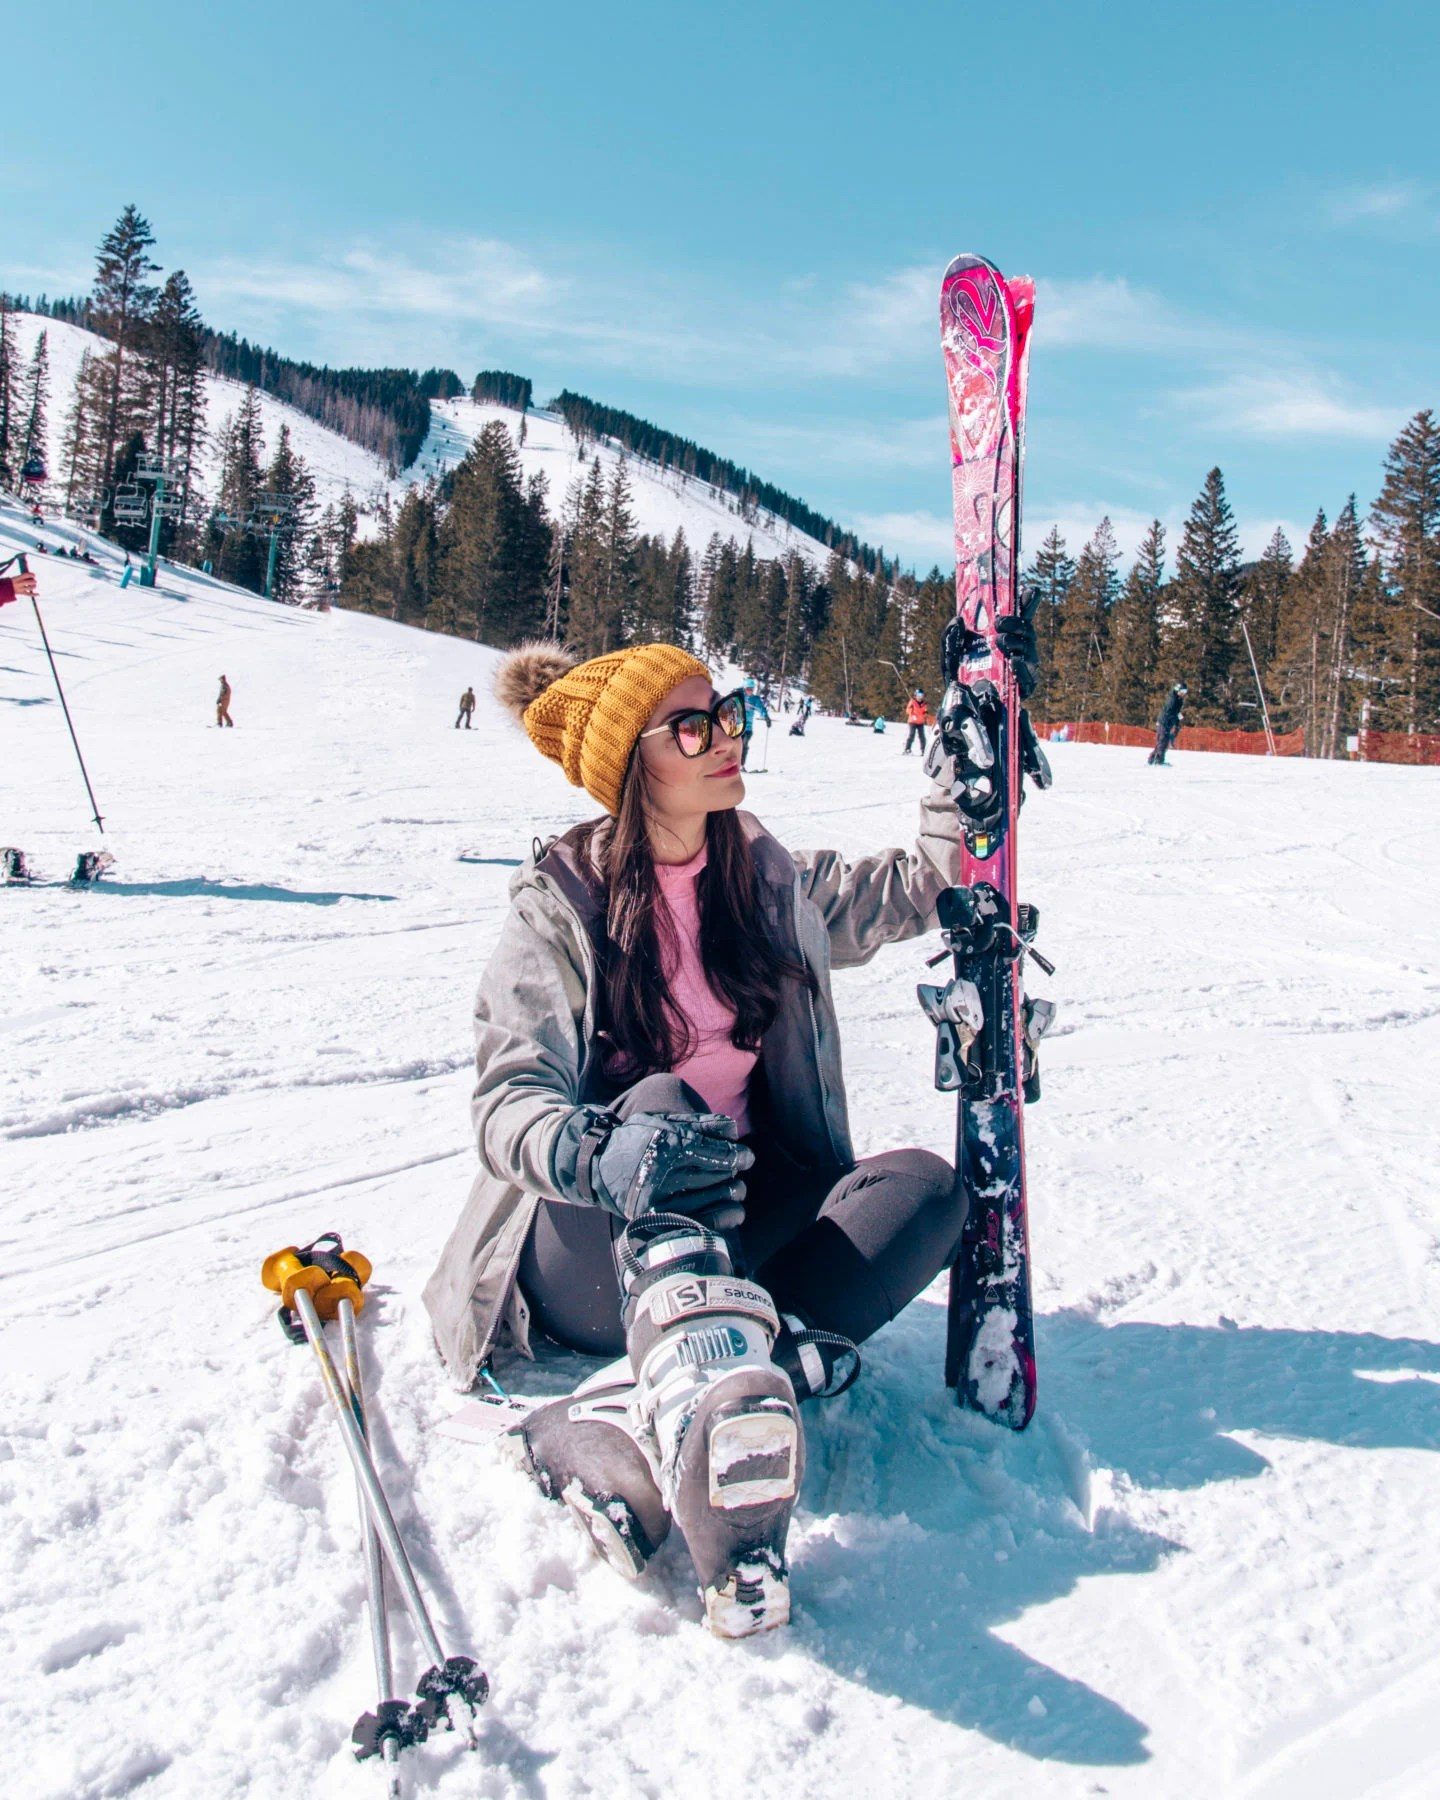 girl sitting on snow holding skis